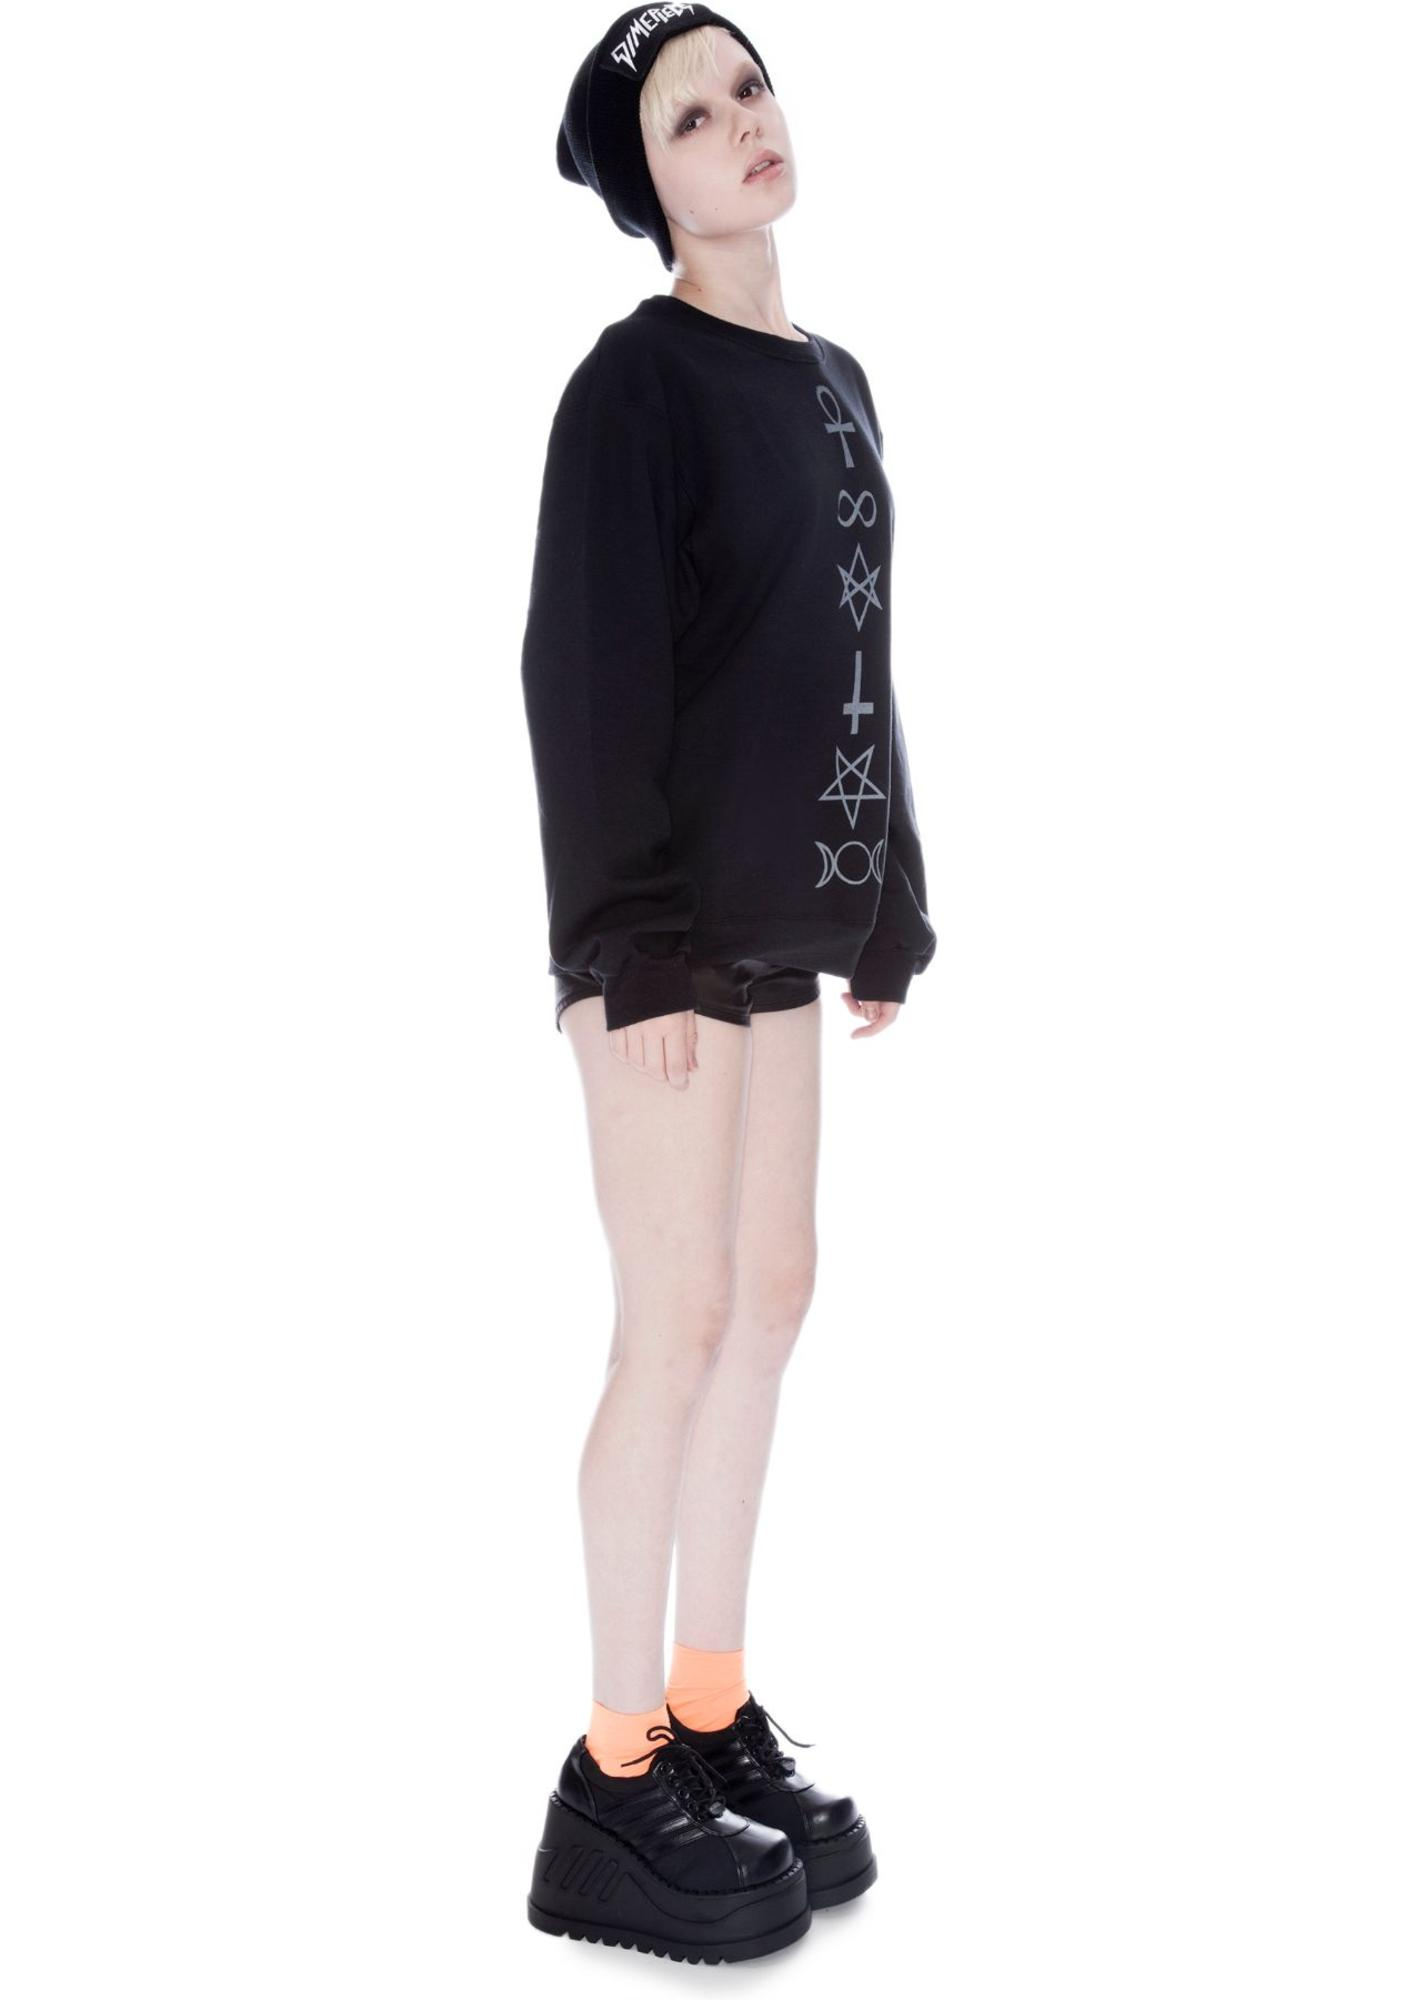 Shop W.A.S. Symbolism Sweater